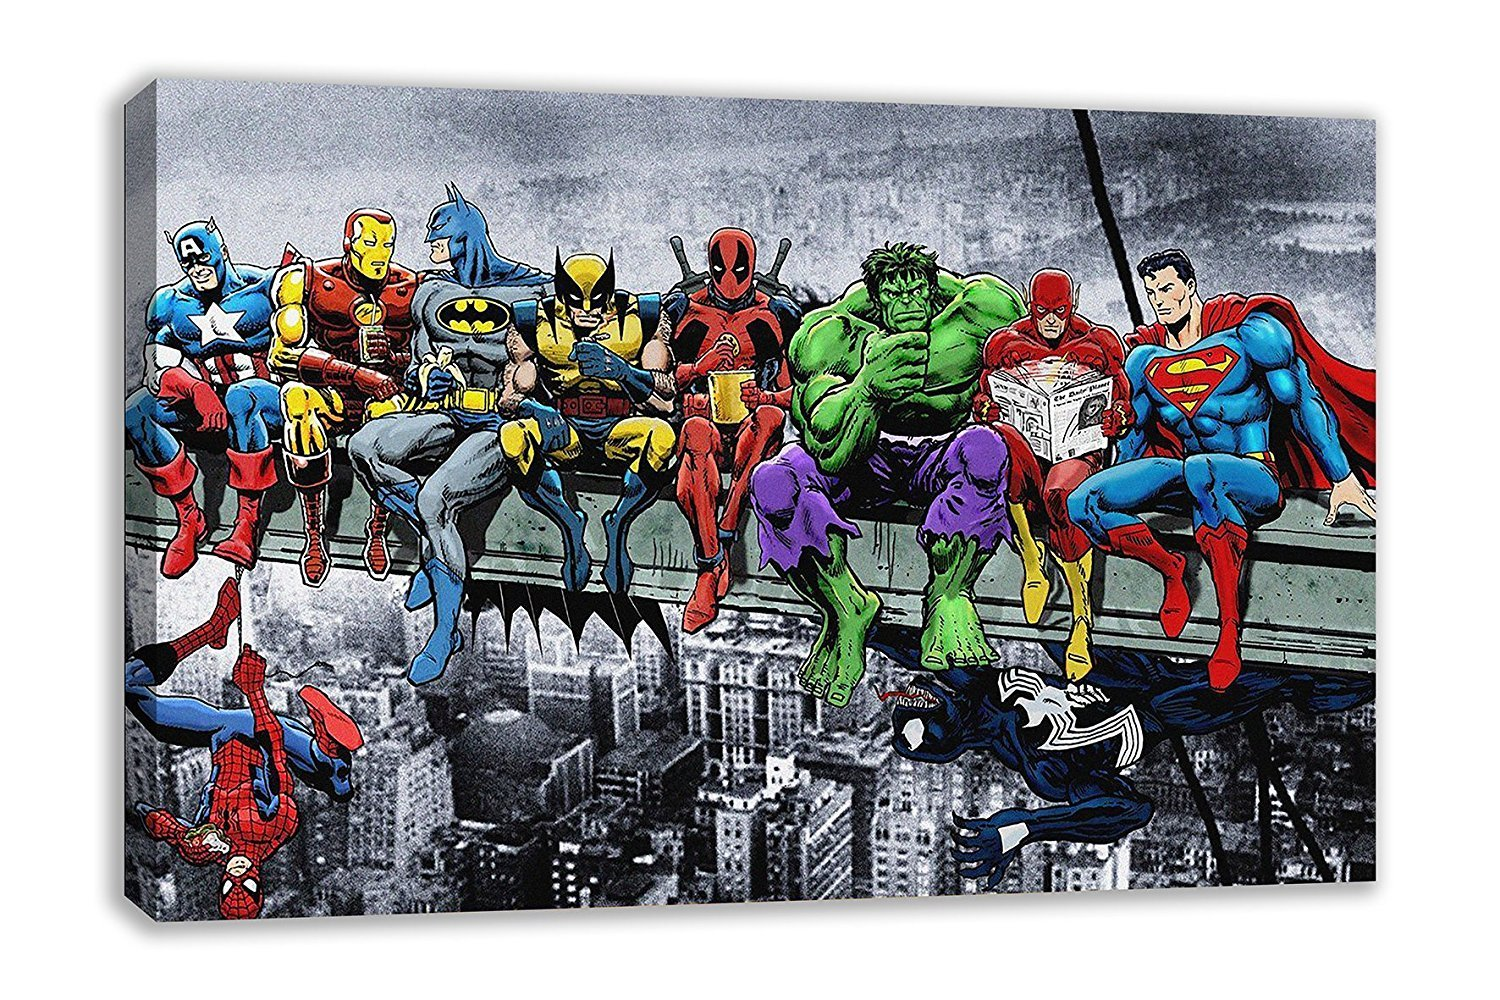 Neu Amazon.com: MARVEL DC COMIC SUPERHEROES GIRDER LUNCH ATOP  PC63